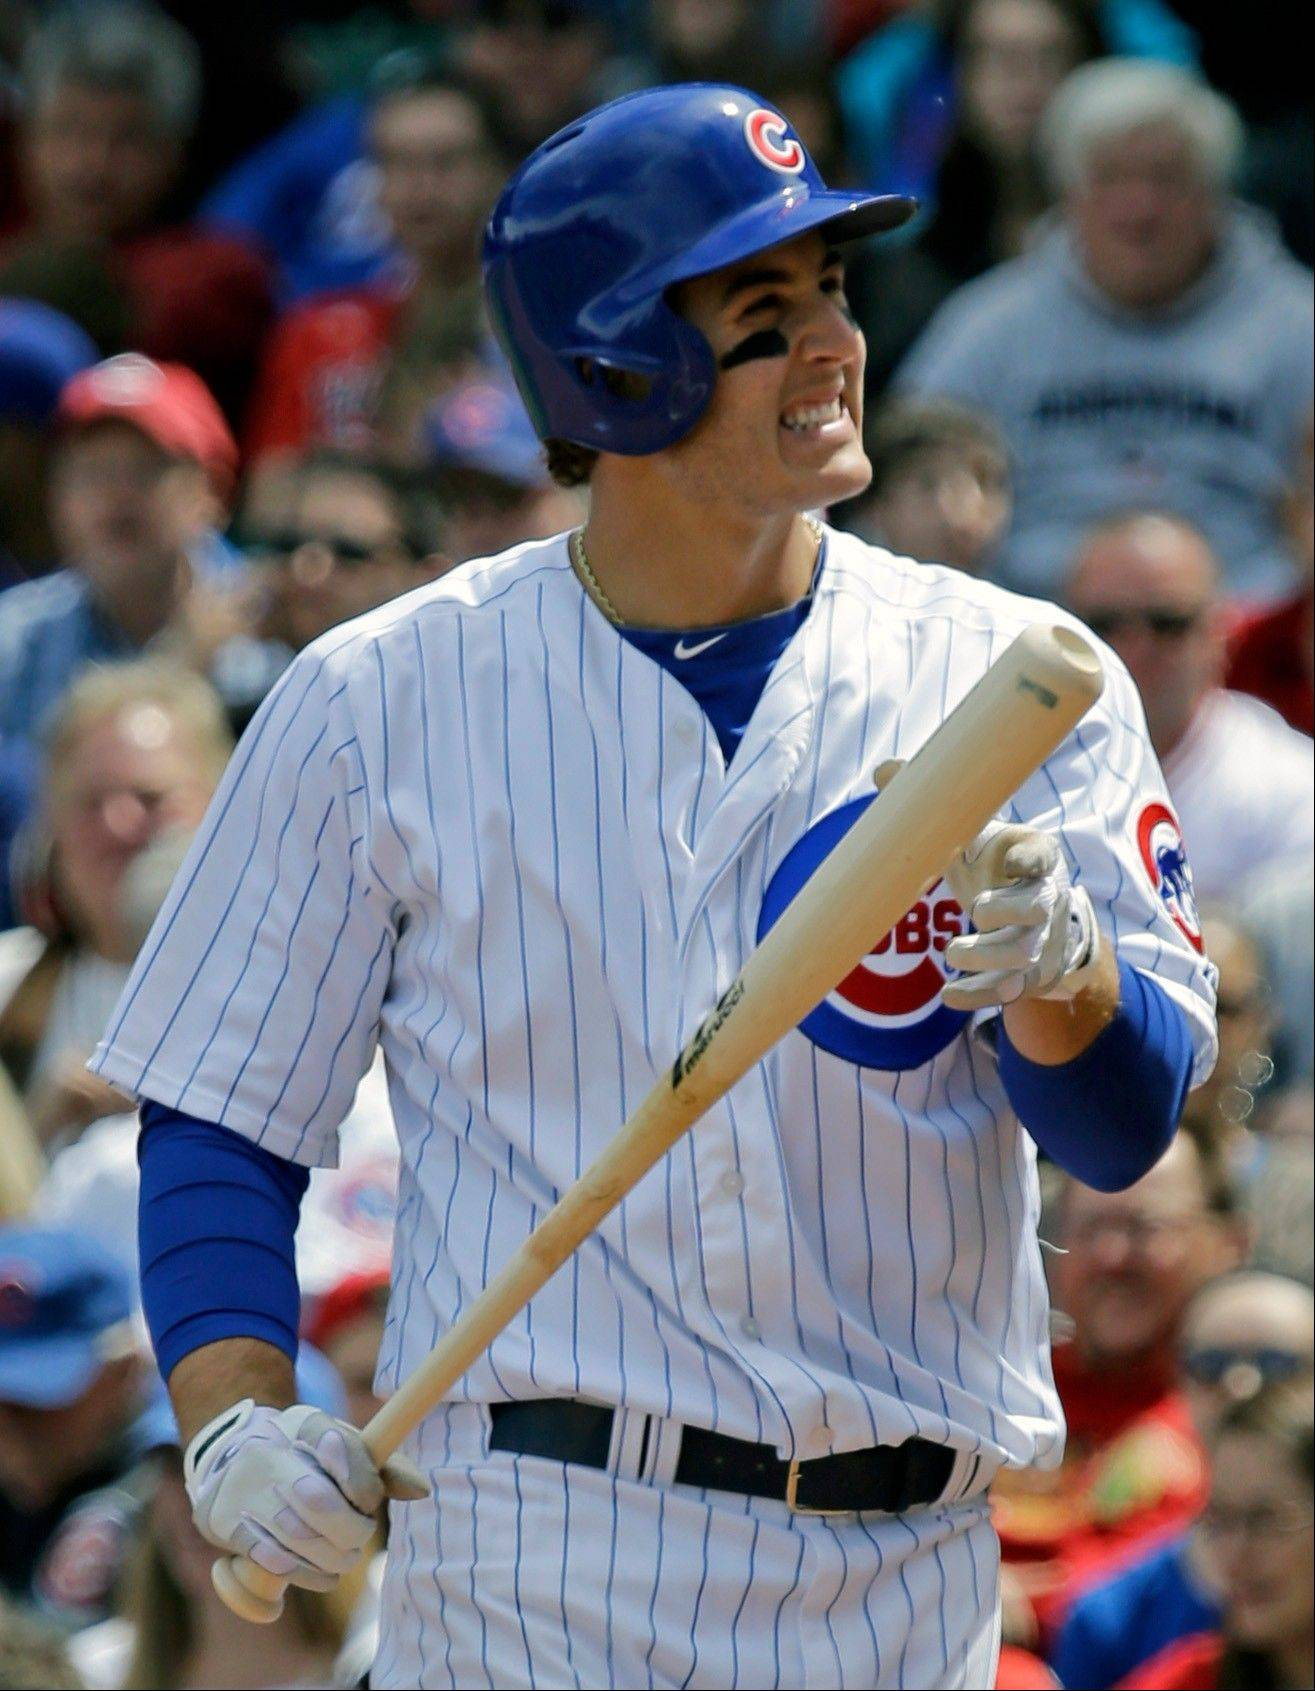 Anthony Rizzo reacts after striking out against the Reds last season. Rizzo's on-base percentage last year was .323.